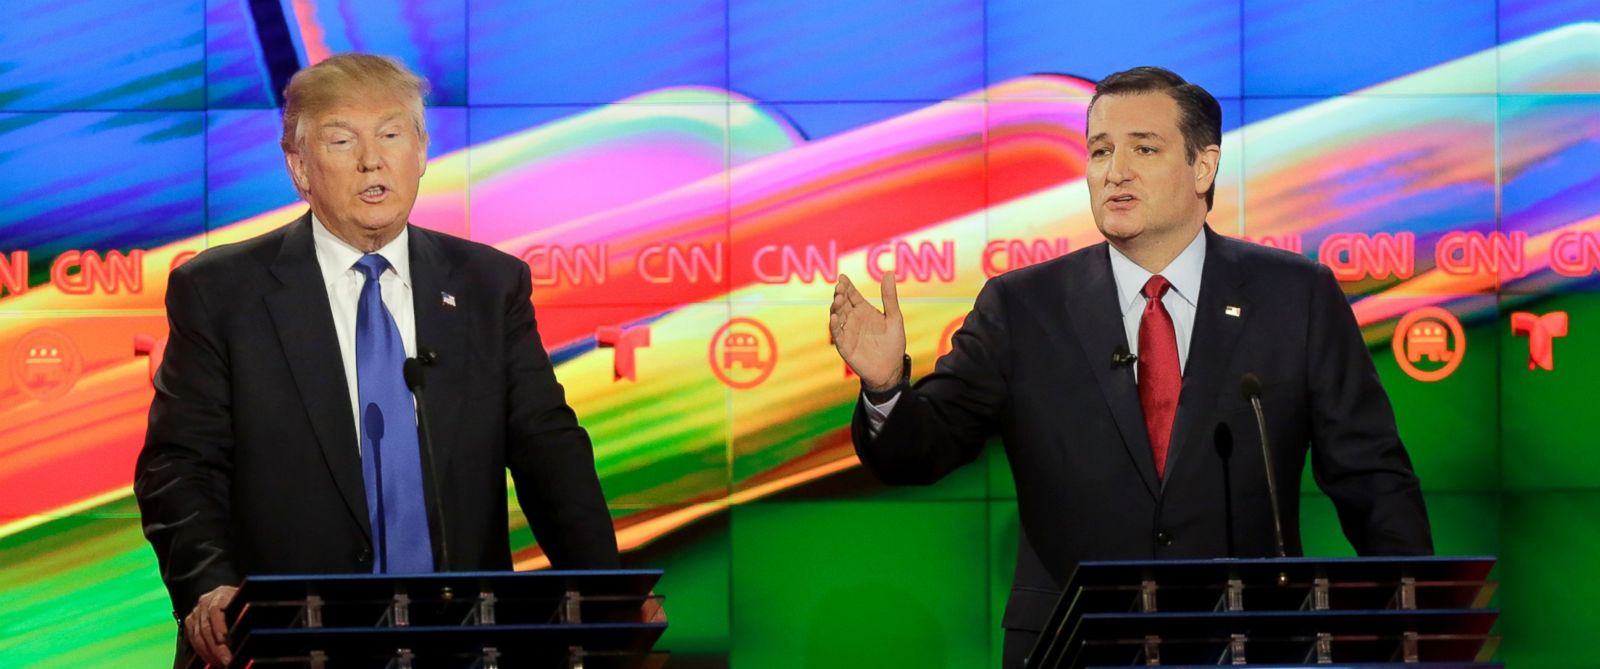 PHOTO: Republican presidential candidates Donald Trump and Sen. Ted Cruz (R-TX) at the Republican presidential primary candidate debate sponsored by CNN and Telemundo at the University of Houston on Feb. 25, 2016, in Houston, TX.